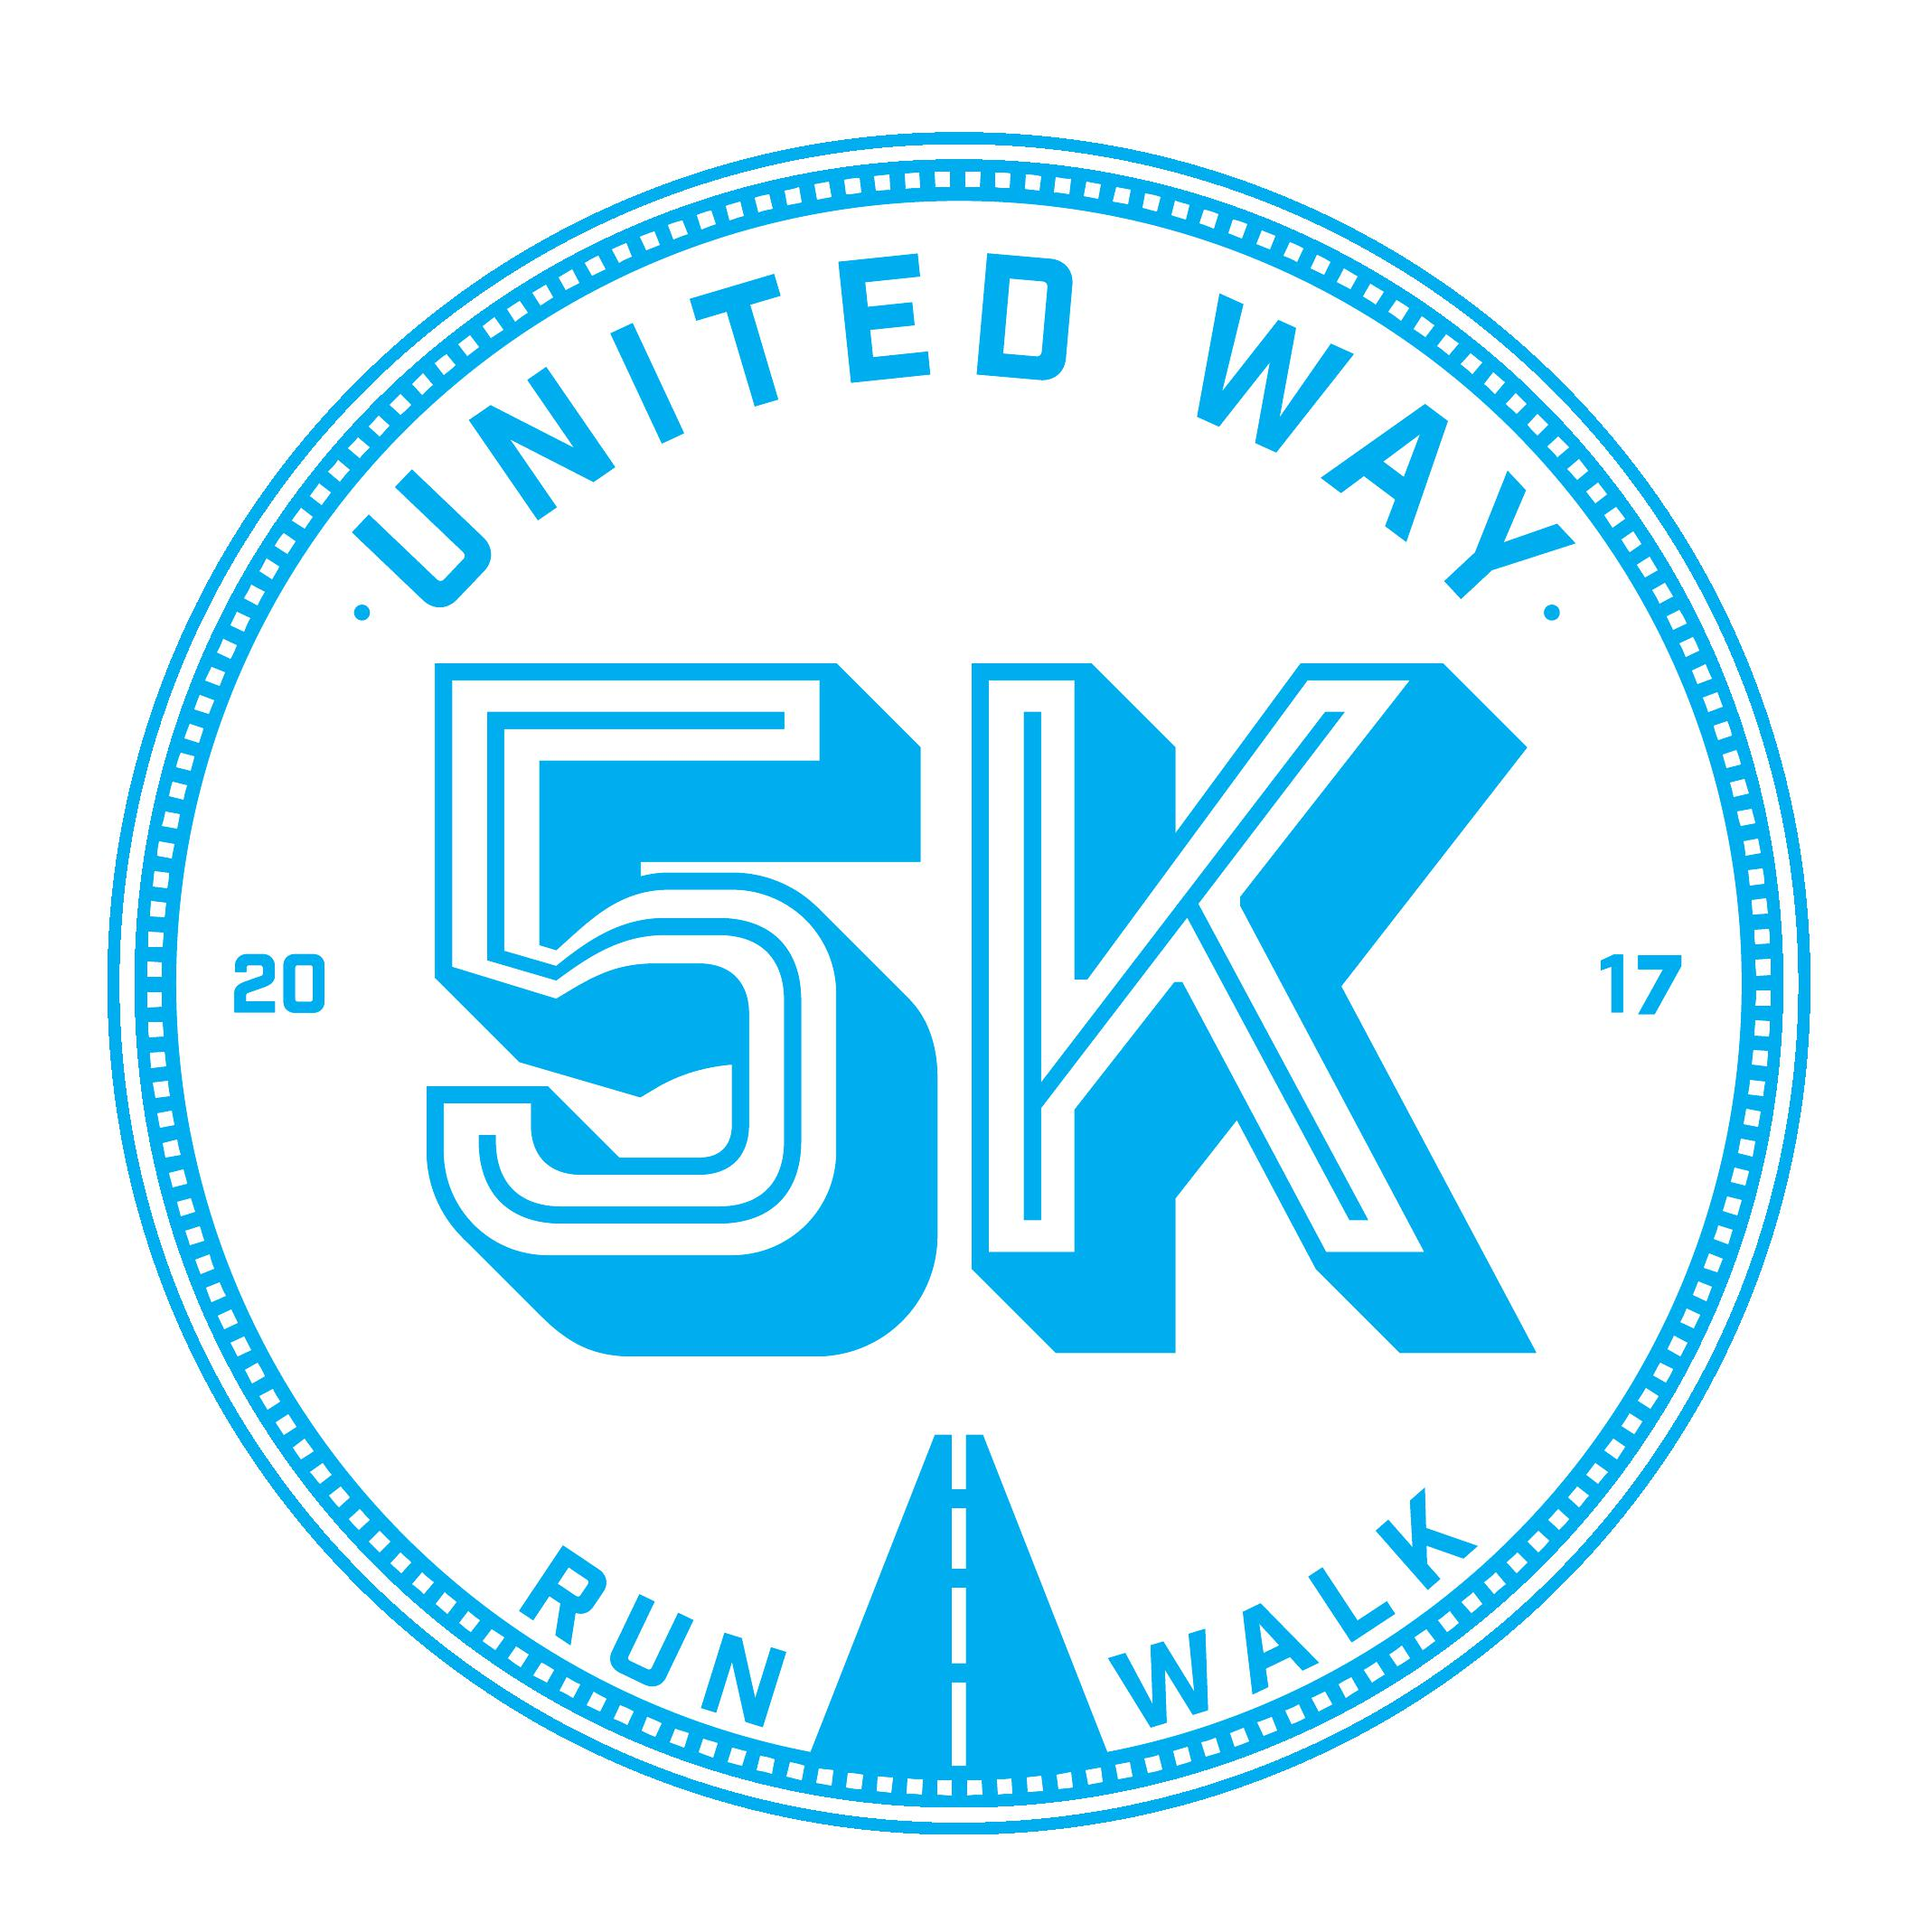 United Way 5K to Benefit United Way of Tri-County